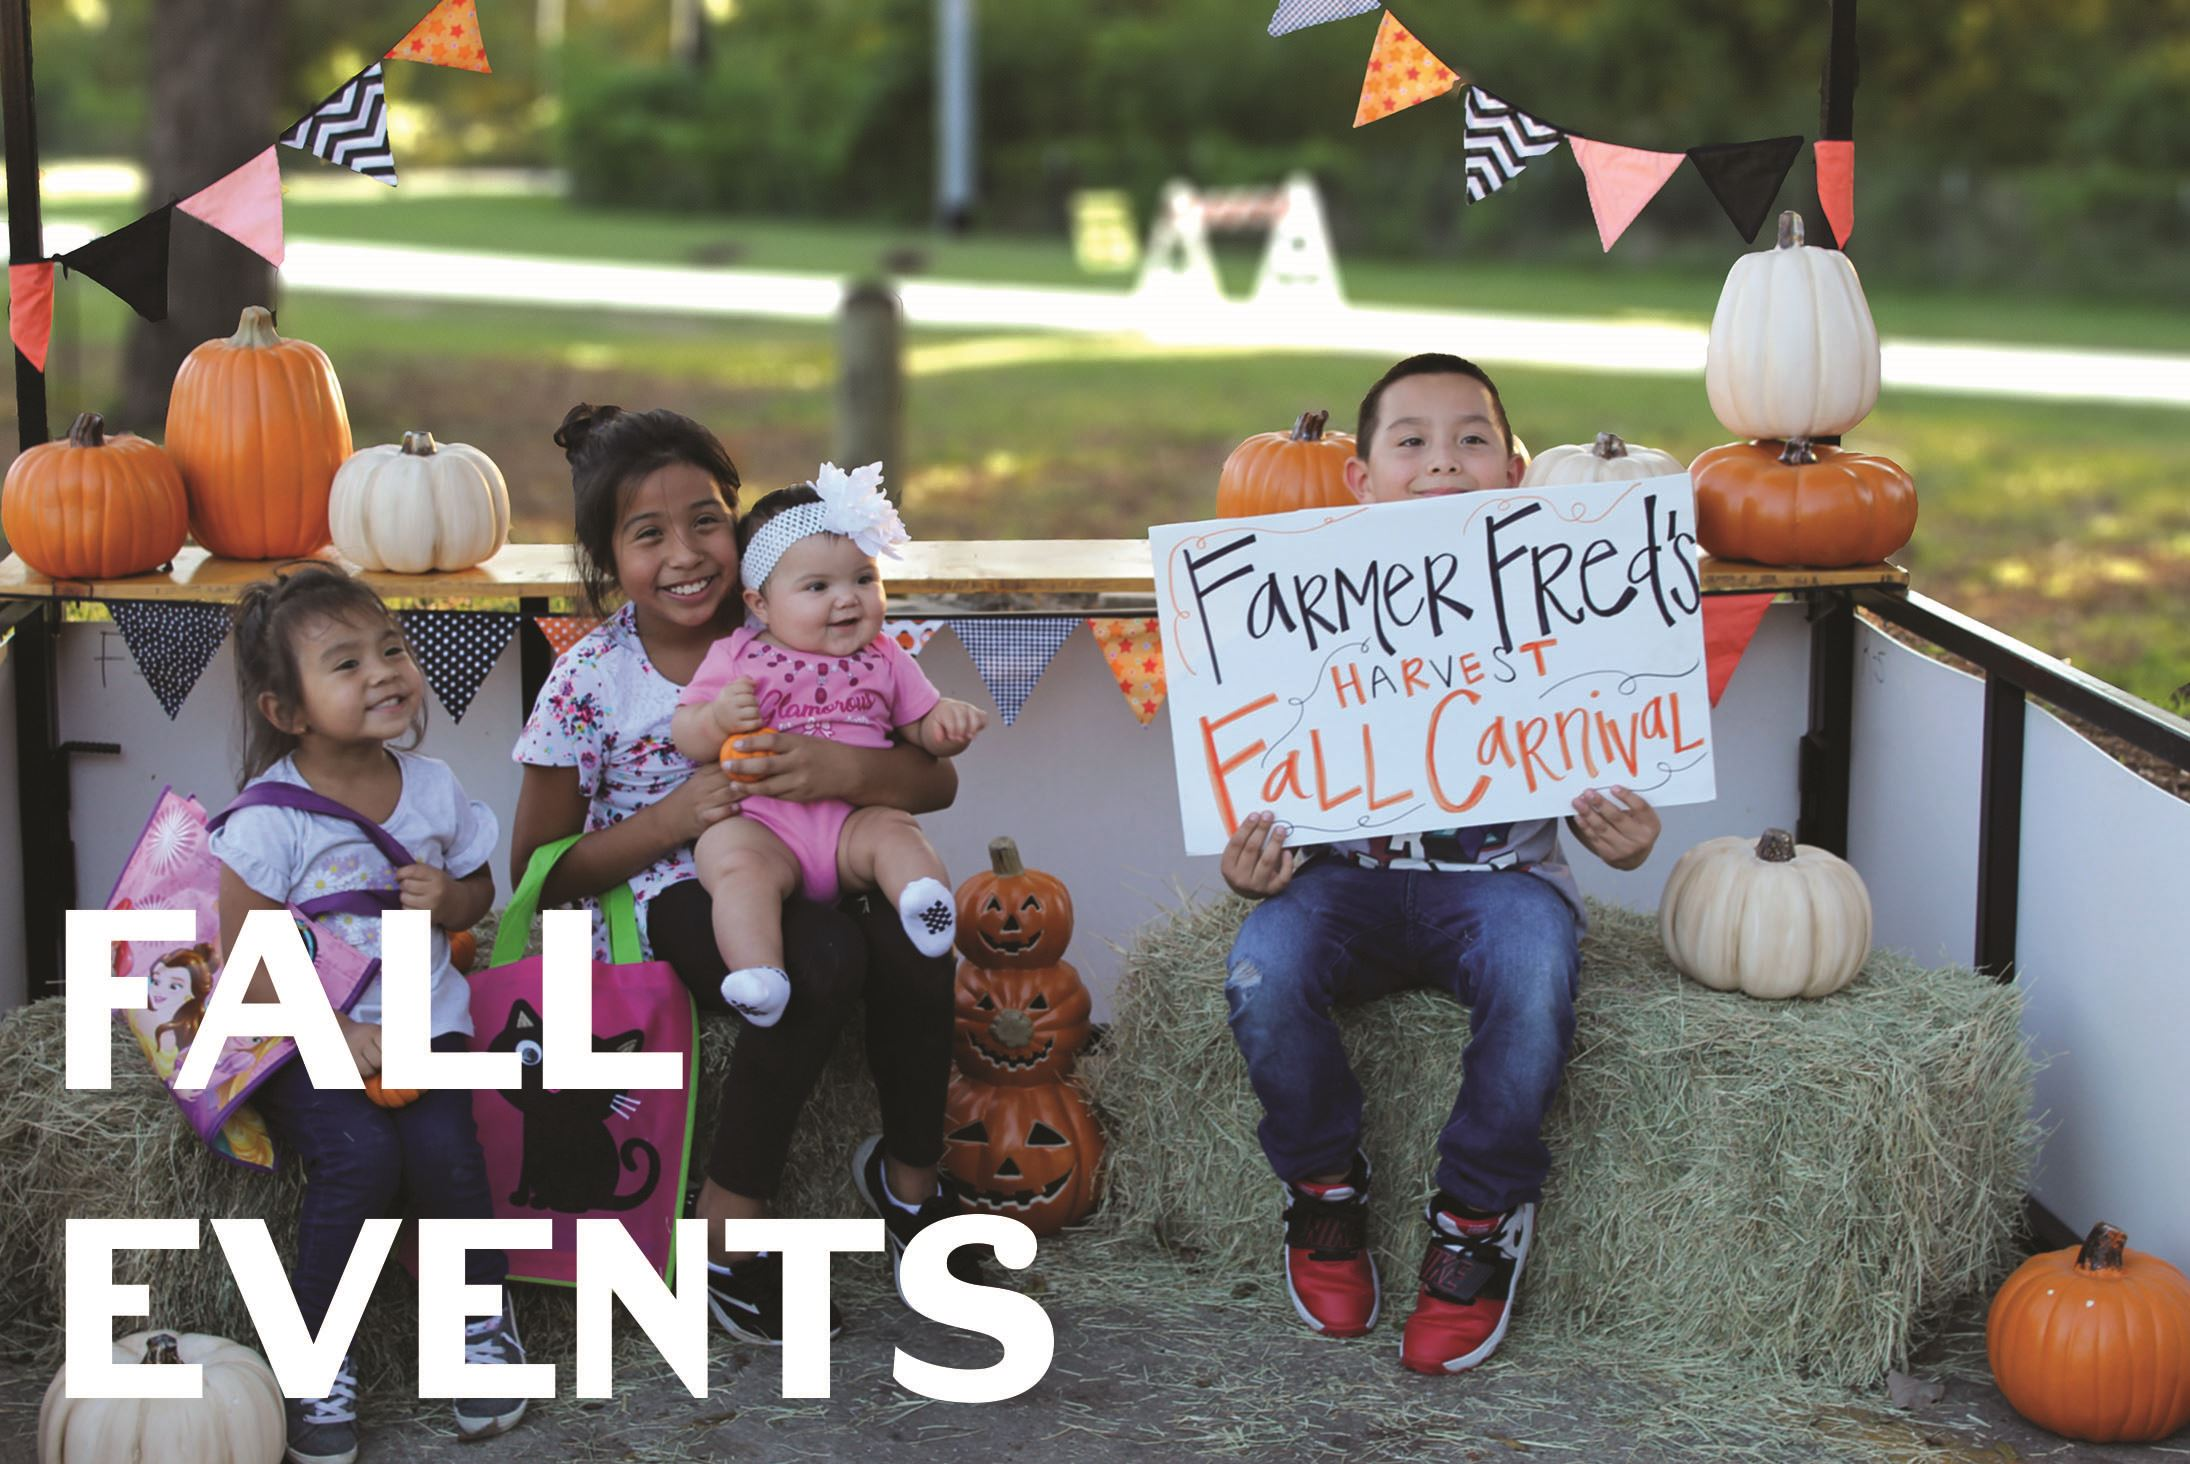 fall carnival image of children smiling with pumpkins